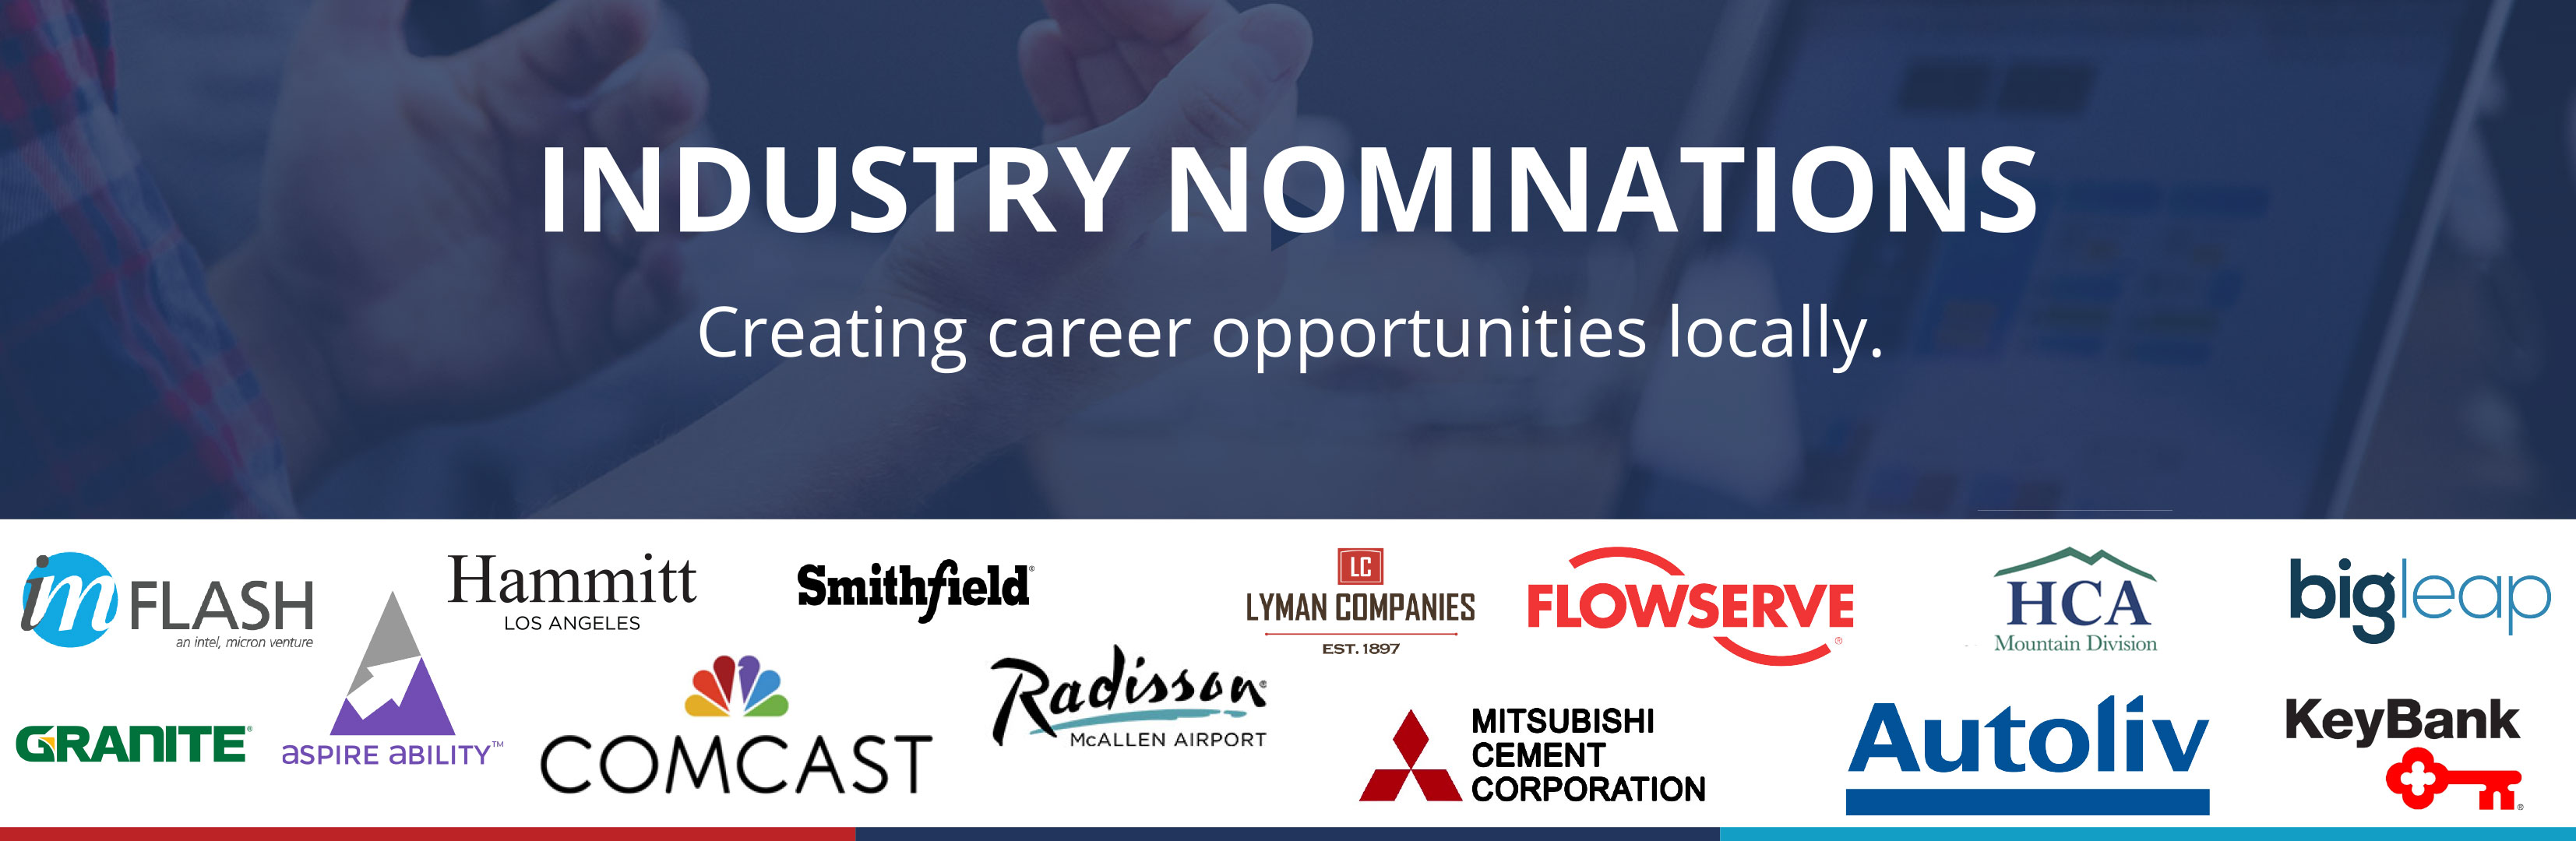 Industry-Nominations